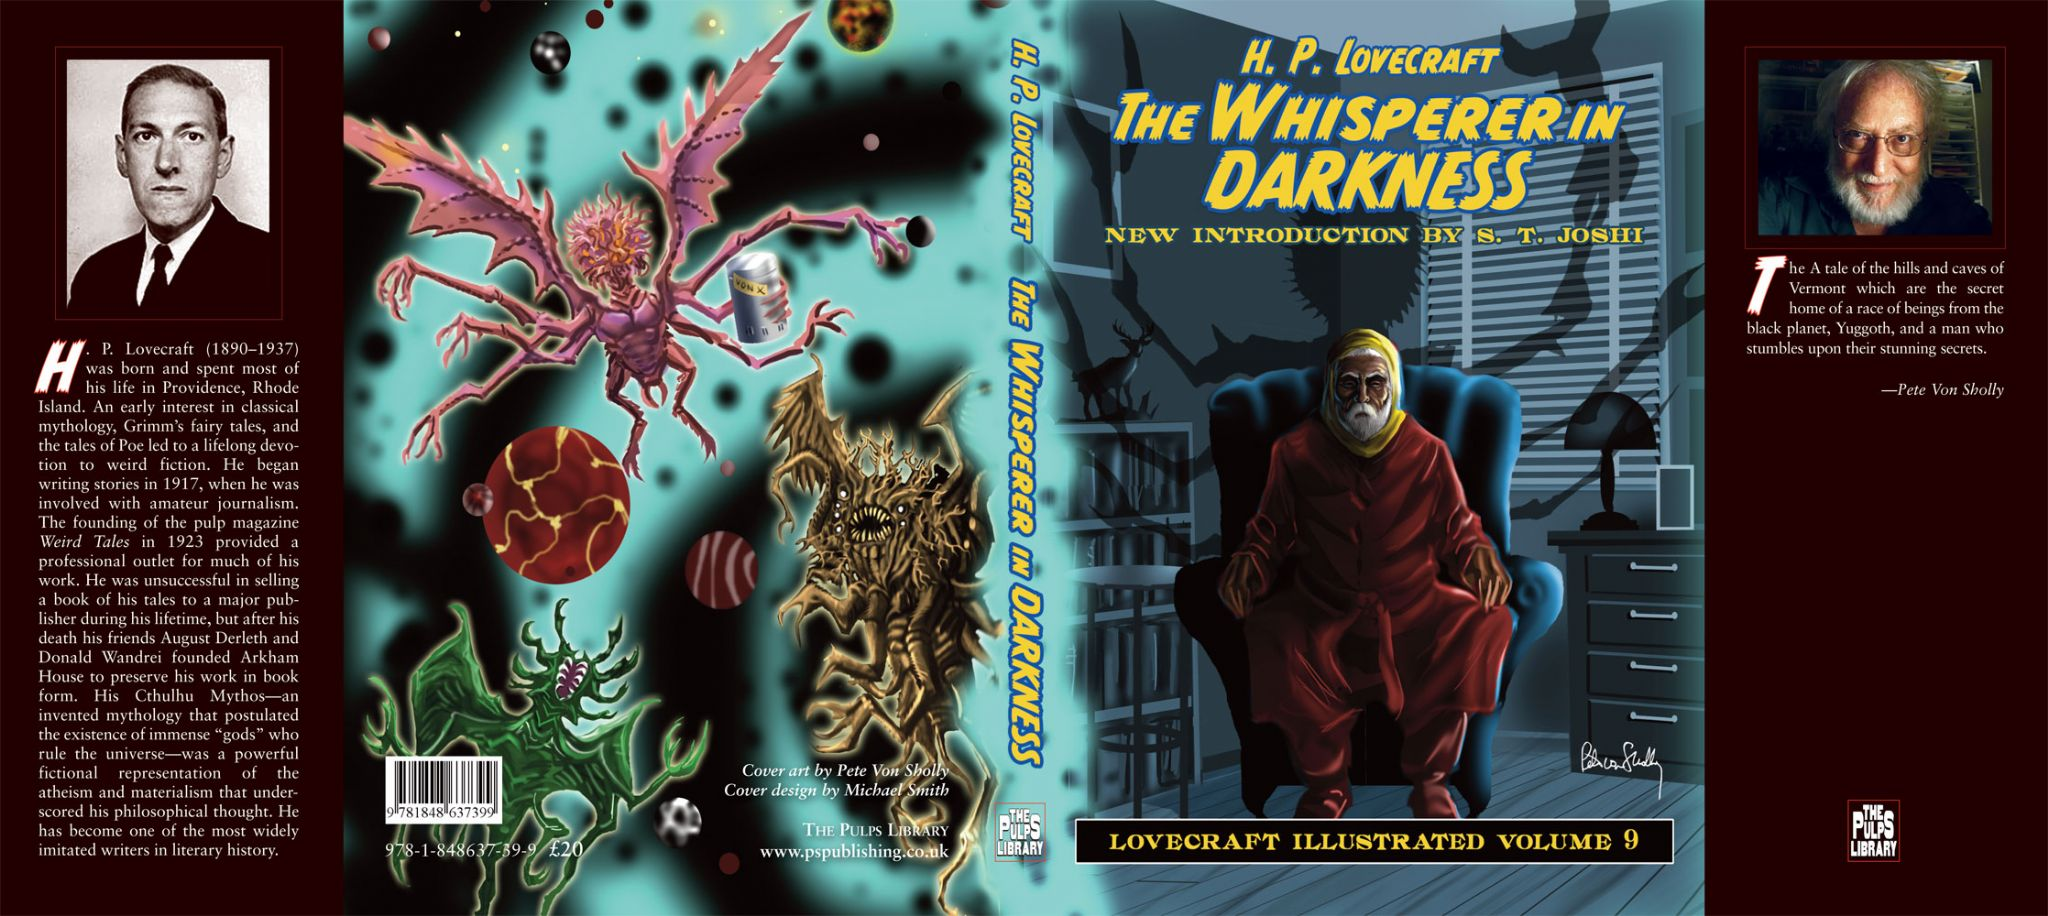 the-whisperer-in-darkness-jhc-by-h-p-lovecraft-2-3737-p